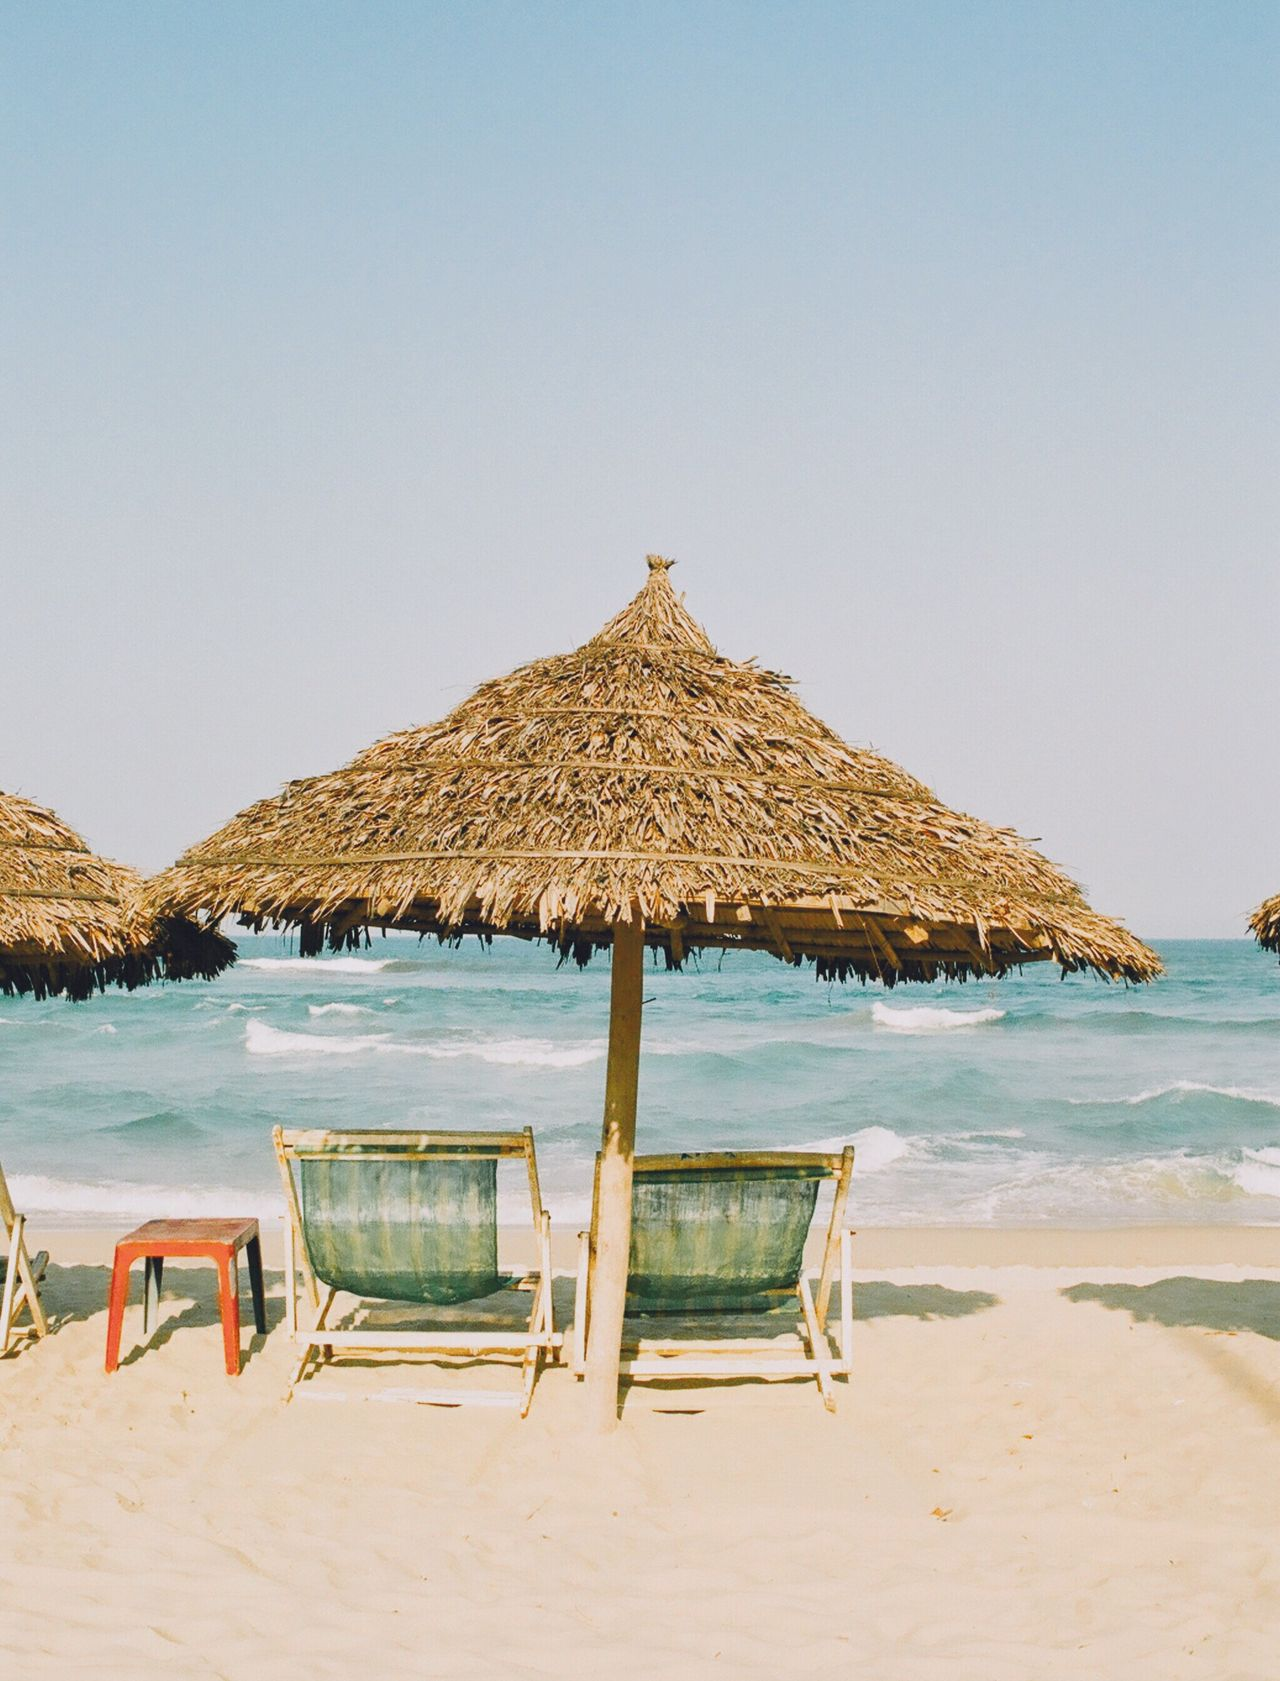 Film Photography Analogue Photography Filmisnotdead Vietnam Danang Holiday Travel Relaxing Mykhebeach Beach Sand Thatched Roof Clear Sky Sea Water Tranquility Relaxation Nature Beauty In Nature Sun Lounger Vacations Tranquil Scene Outdoors Scenics Calm No People Day